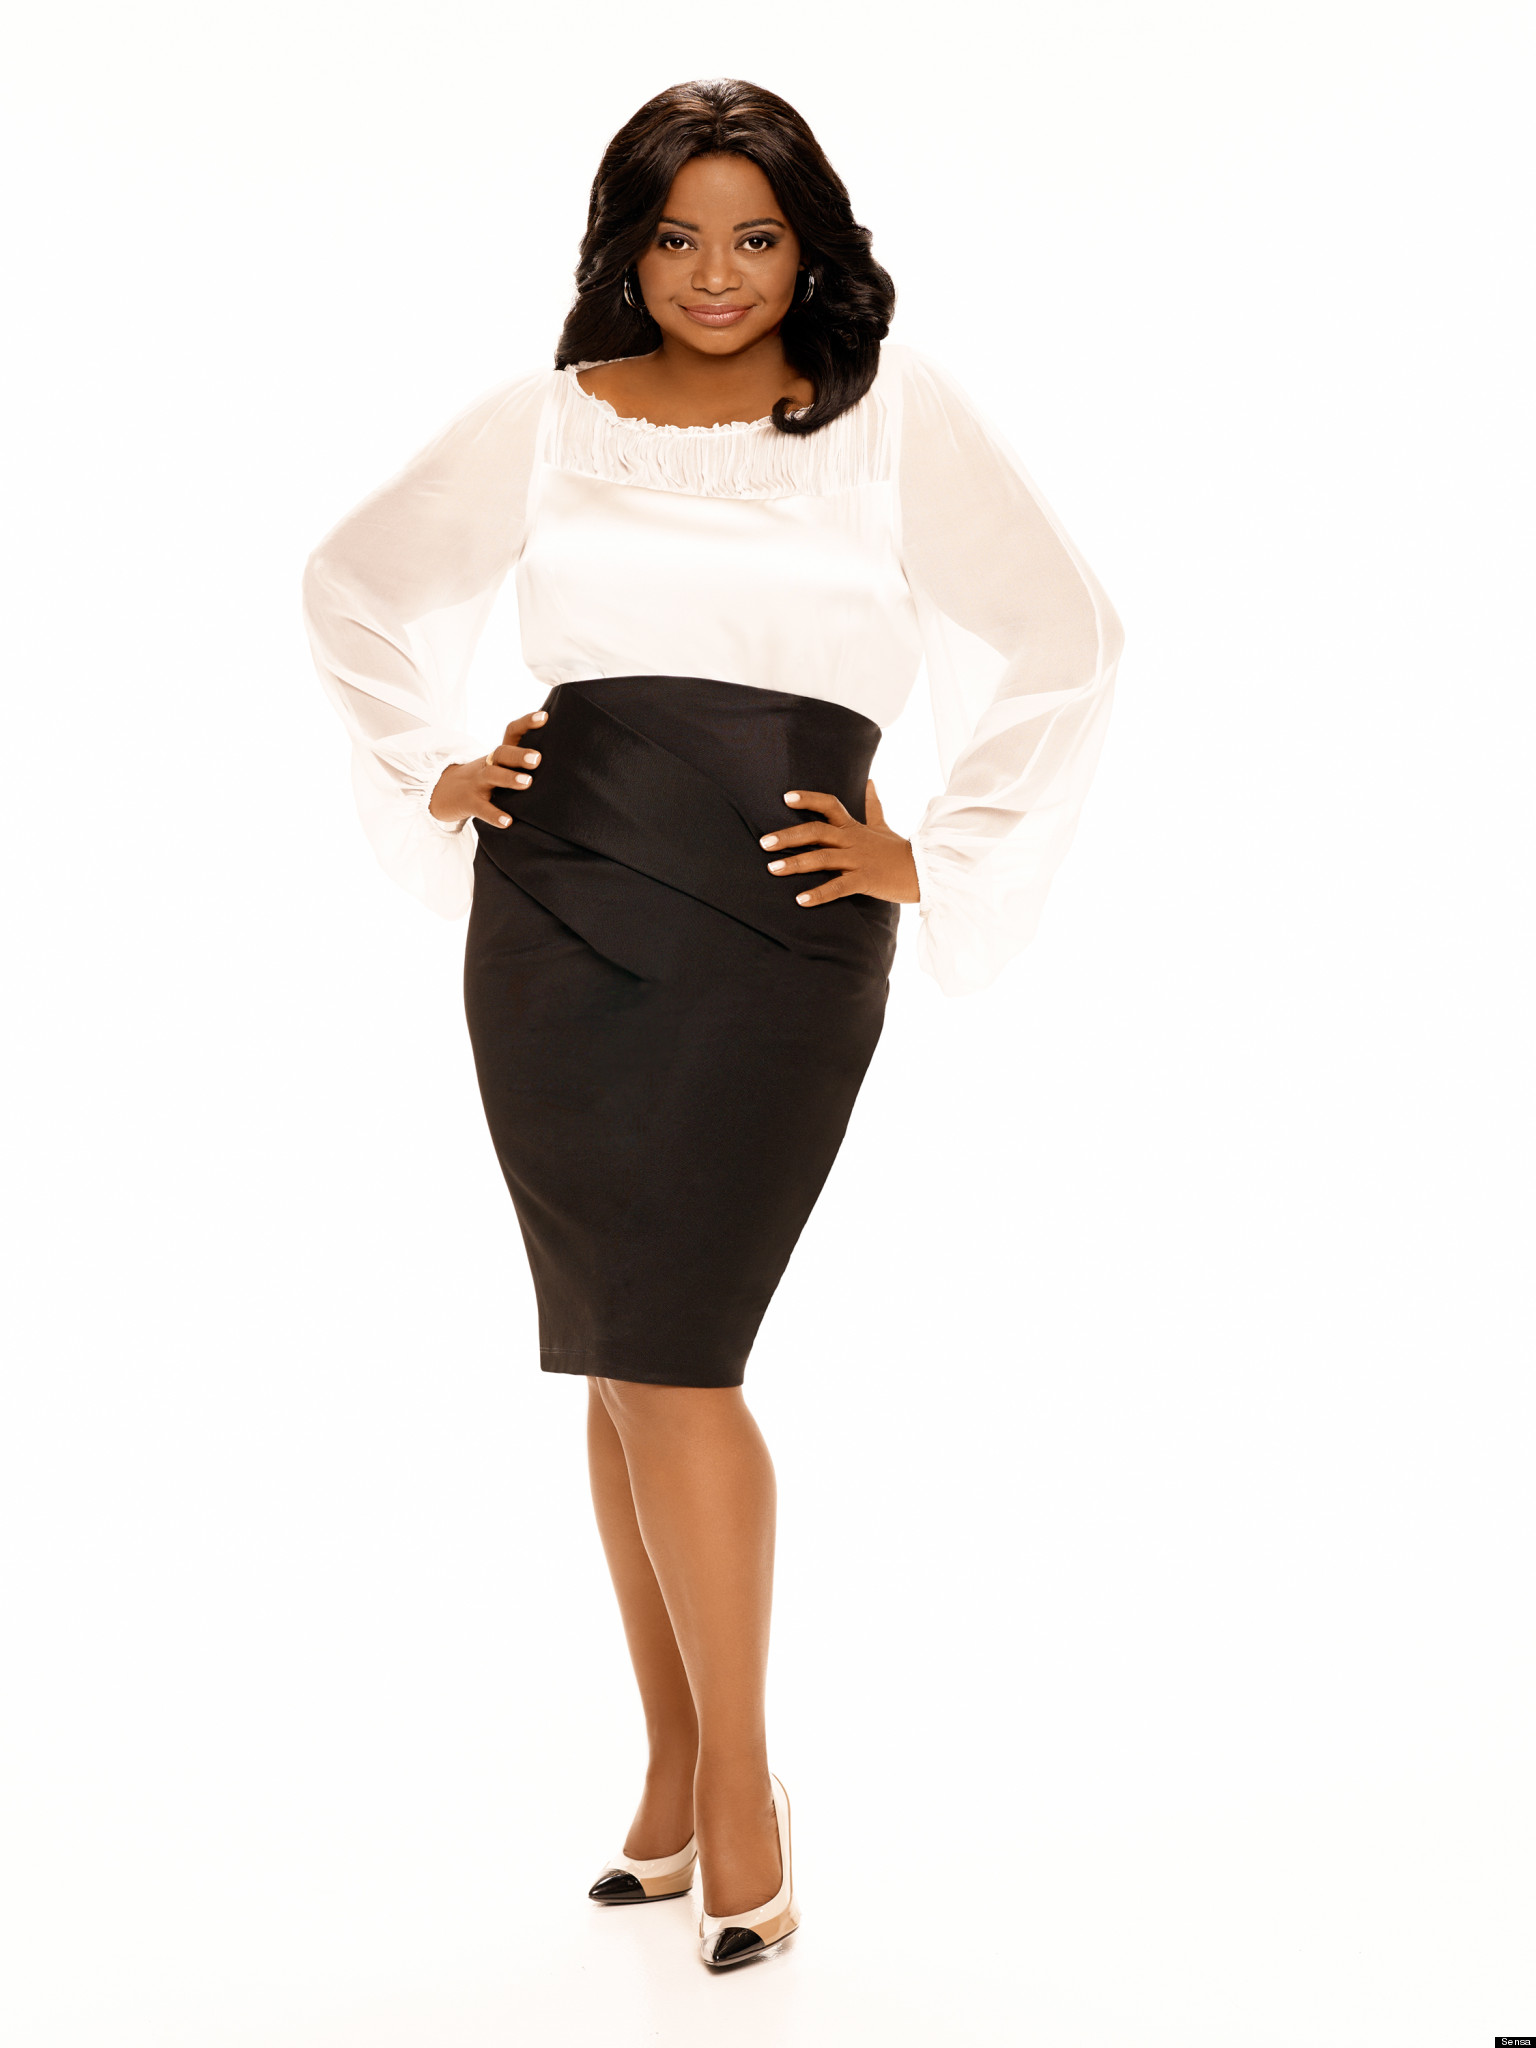 Octavia Spencer Talks Weight Loss, The Oscars And Poo Poo ...